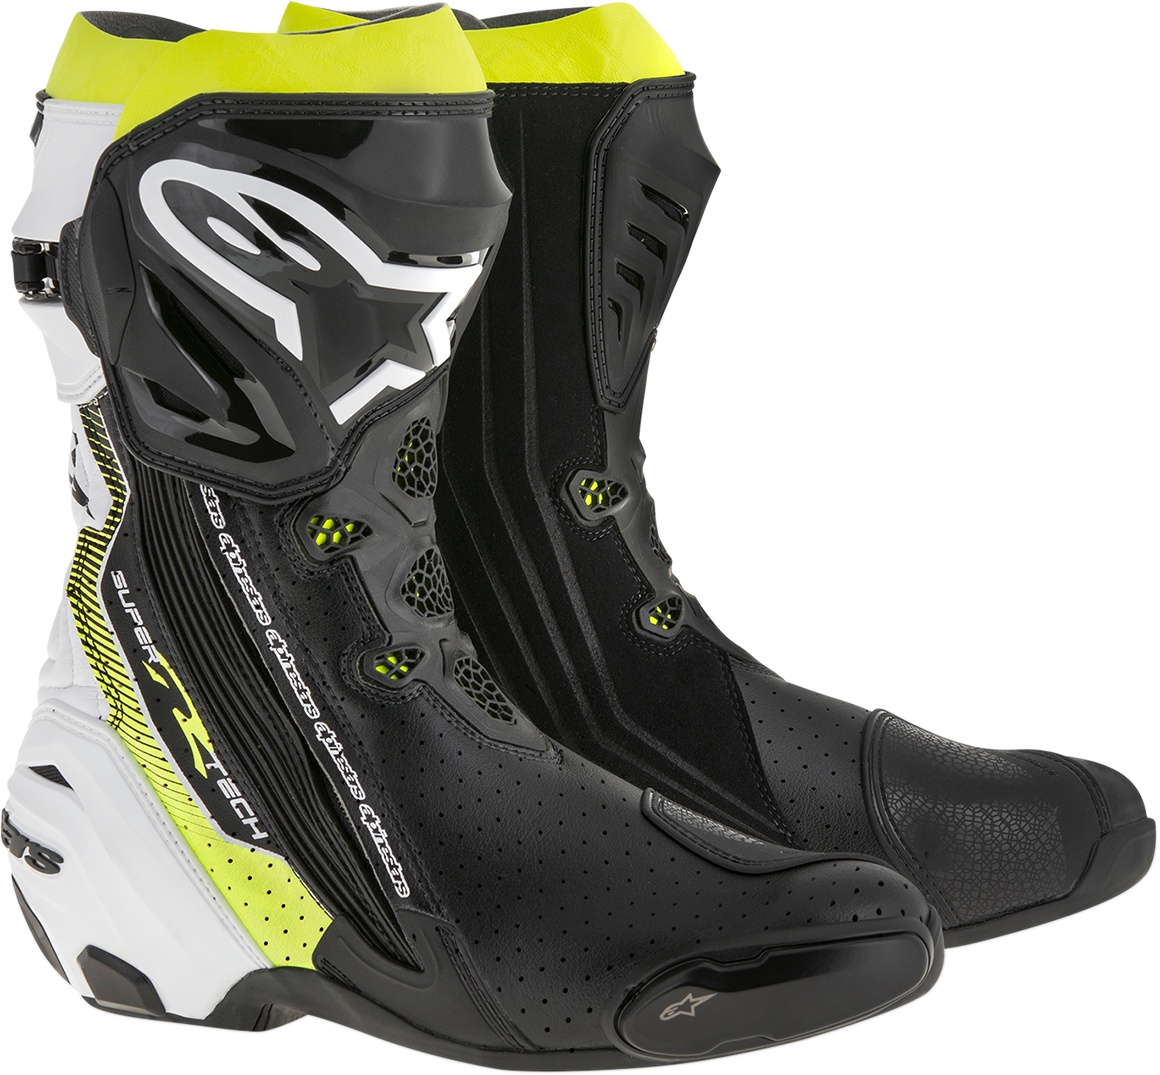 Mens Alpinestars Black Yellow White Textile Supertech R Motorcycle Racing Boots